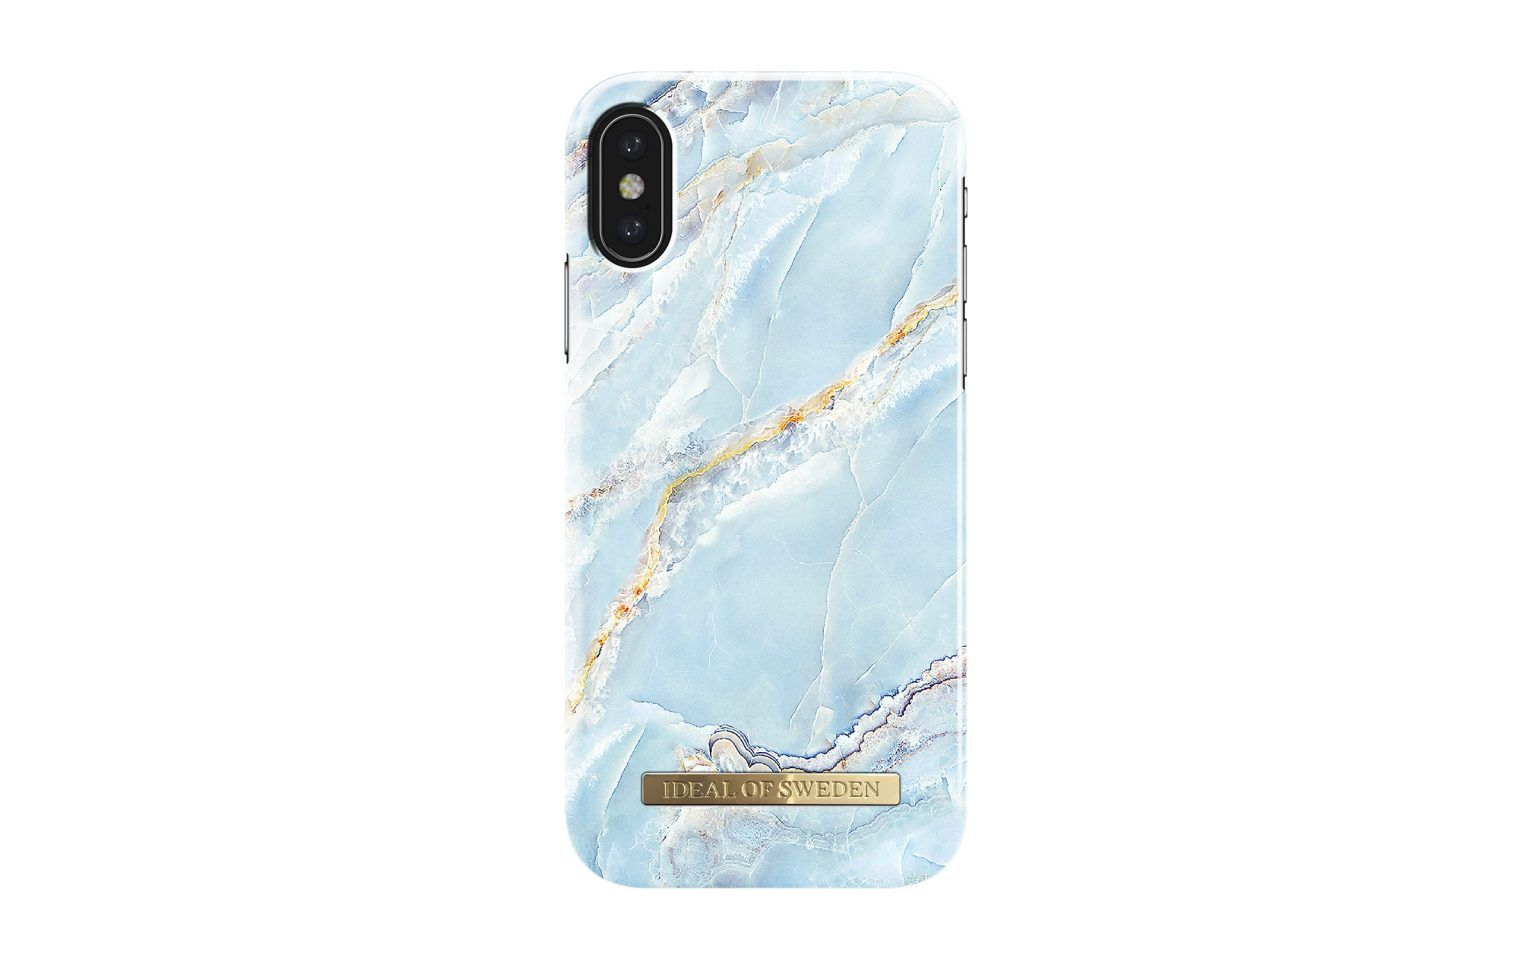 Fashion Case S S17 iPhone X Island Paradise Marble - iDeal Of Sweden 2540945cb65eb